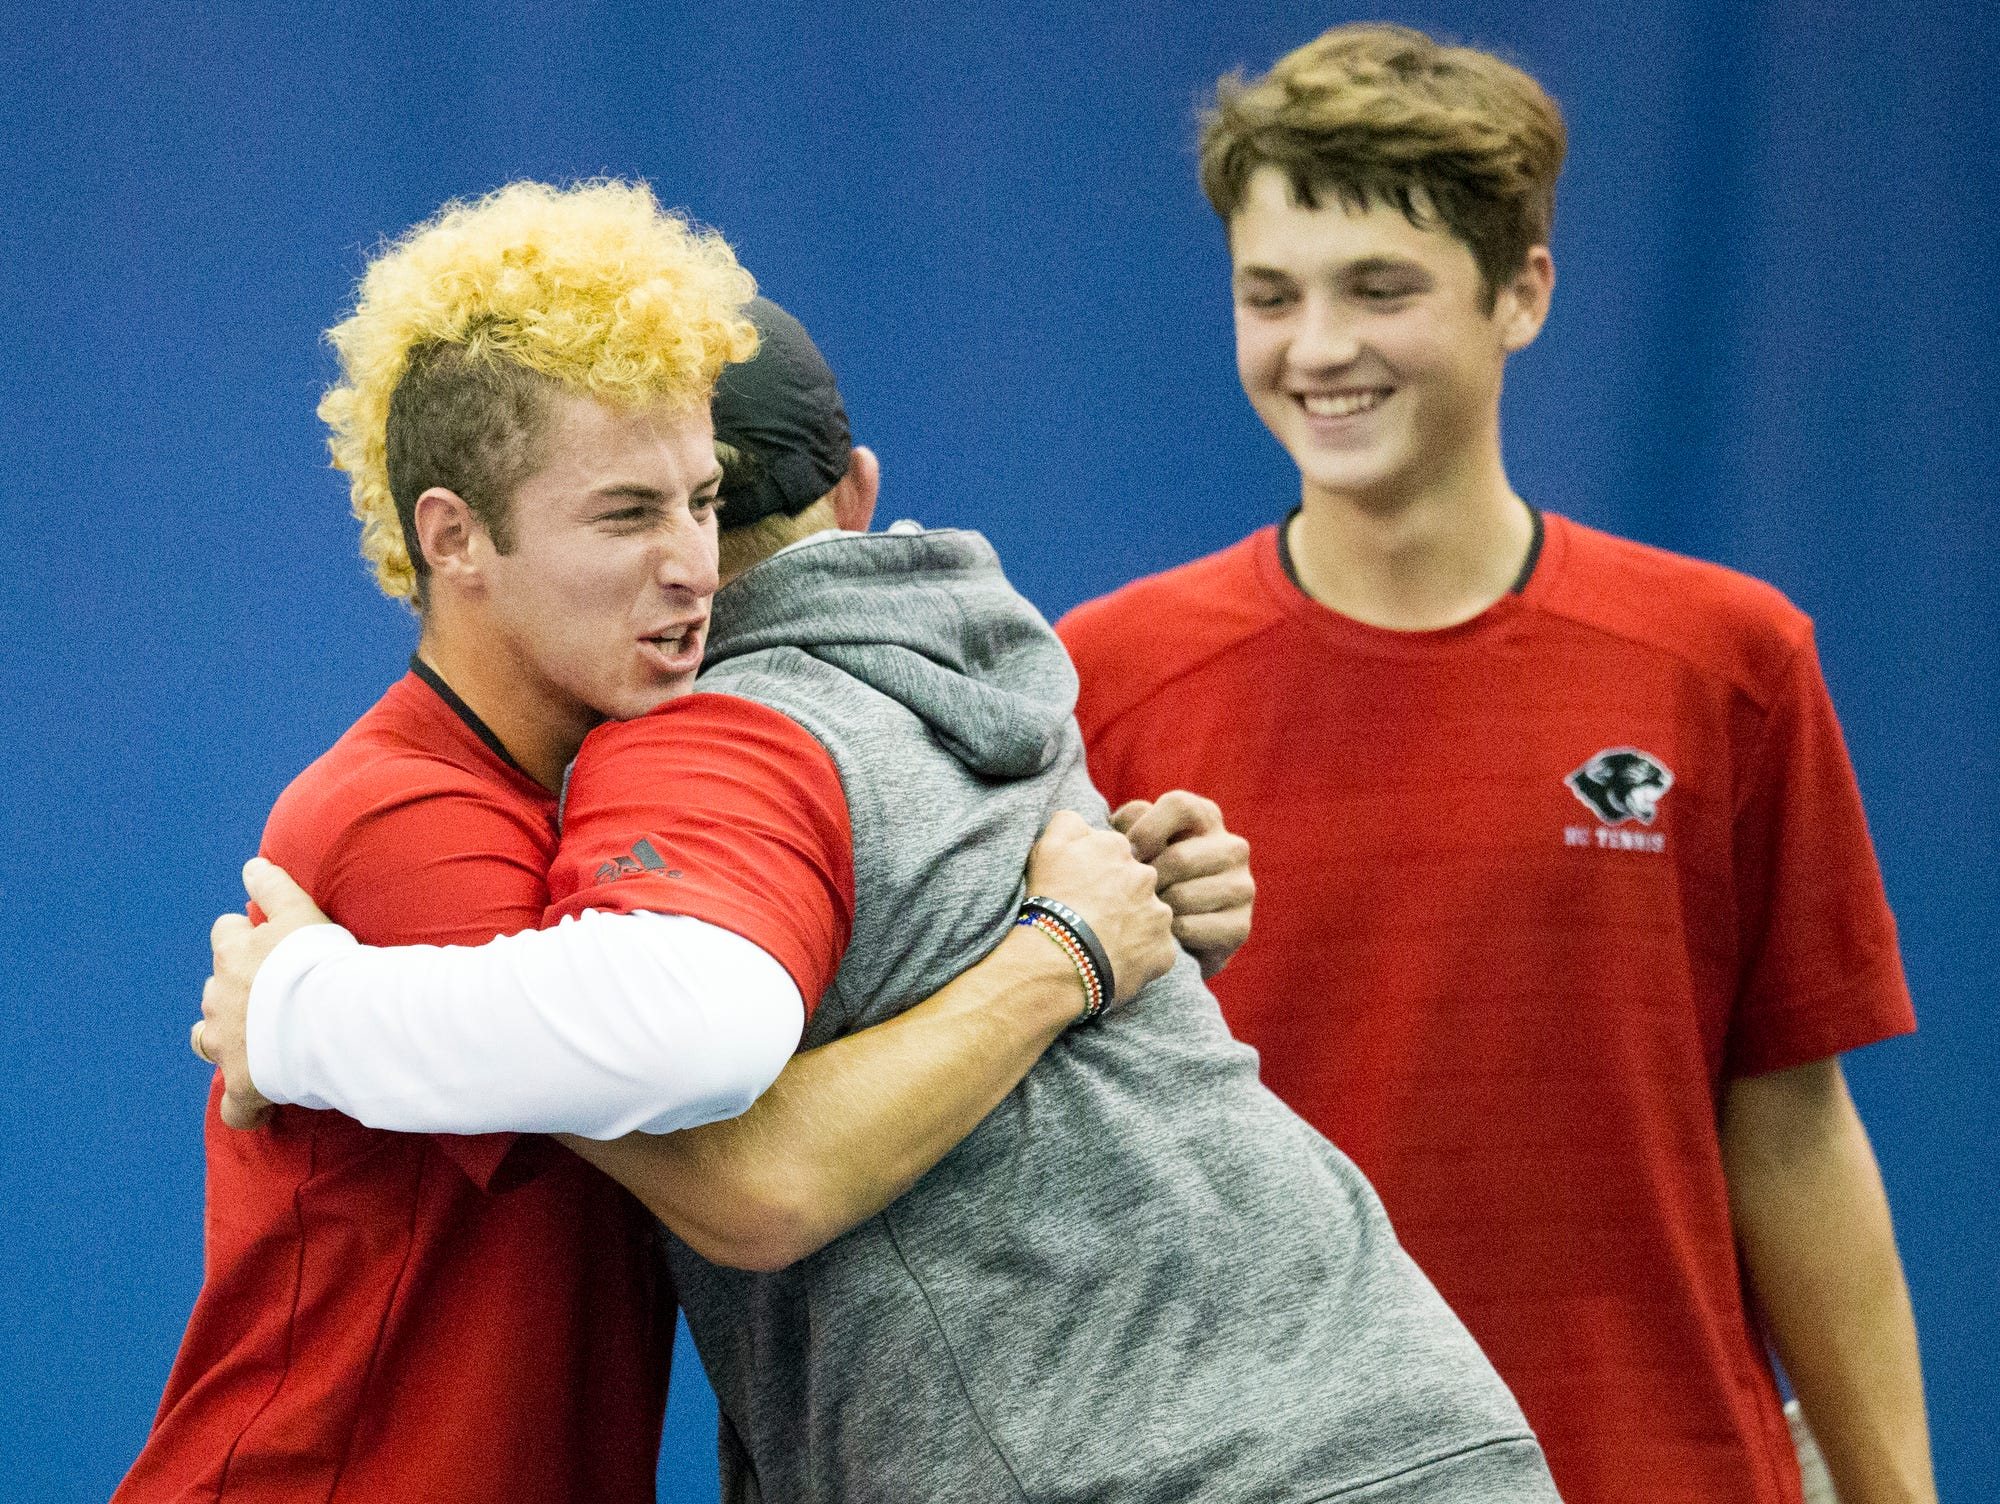 JJ Kroot (left) and doubles partner Jon Tuerk of North Central High School, get a hug after winning, during the IHSAA Boys Individual Tennis State Finals, from Five Seasons, Indianapolis, Saturday, Oct. 24, 2015.